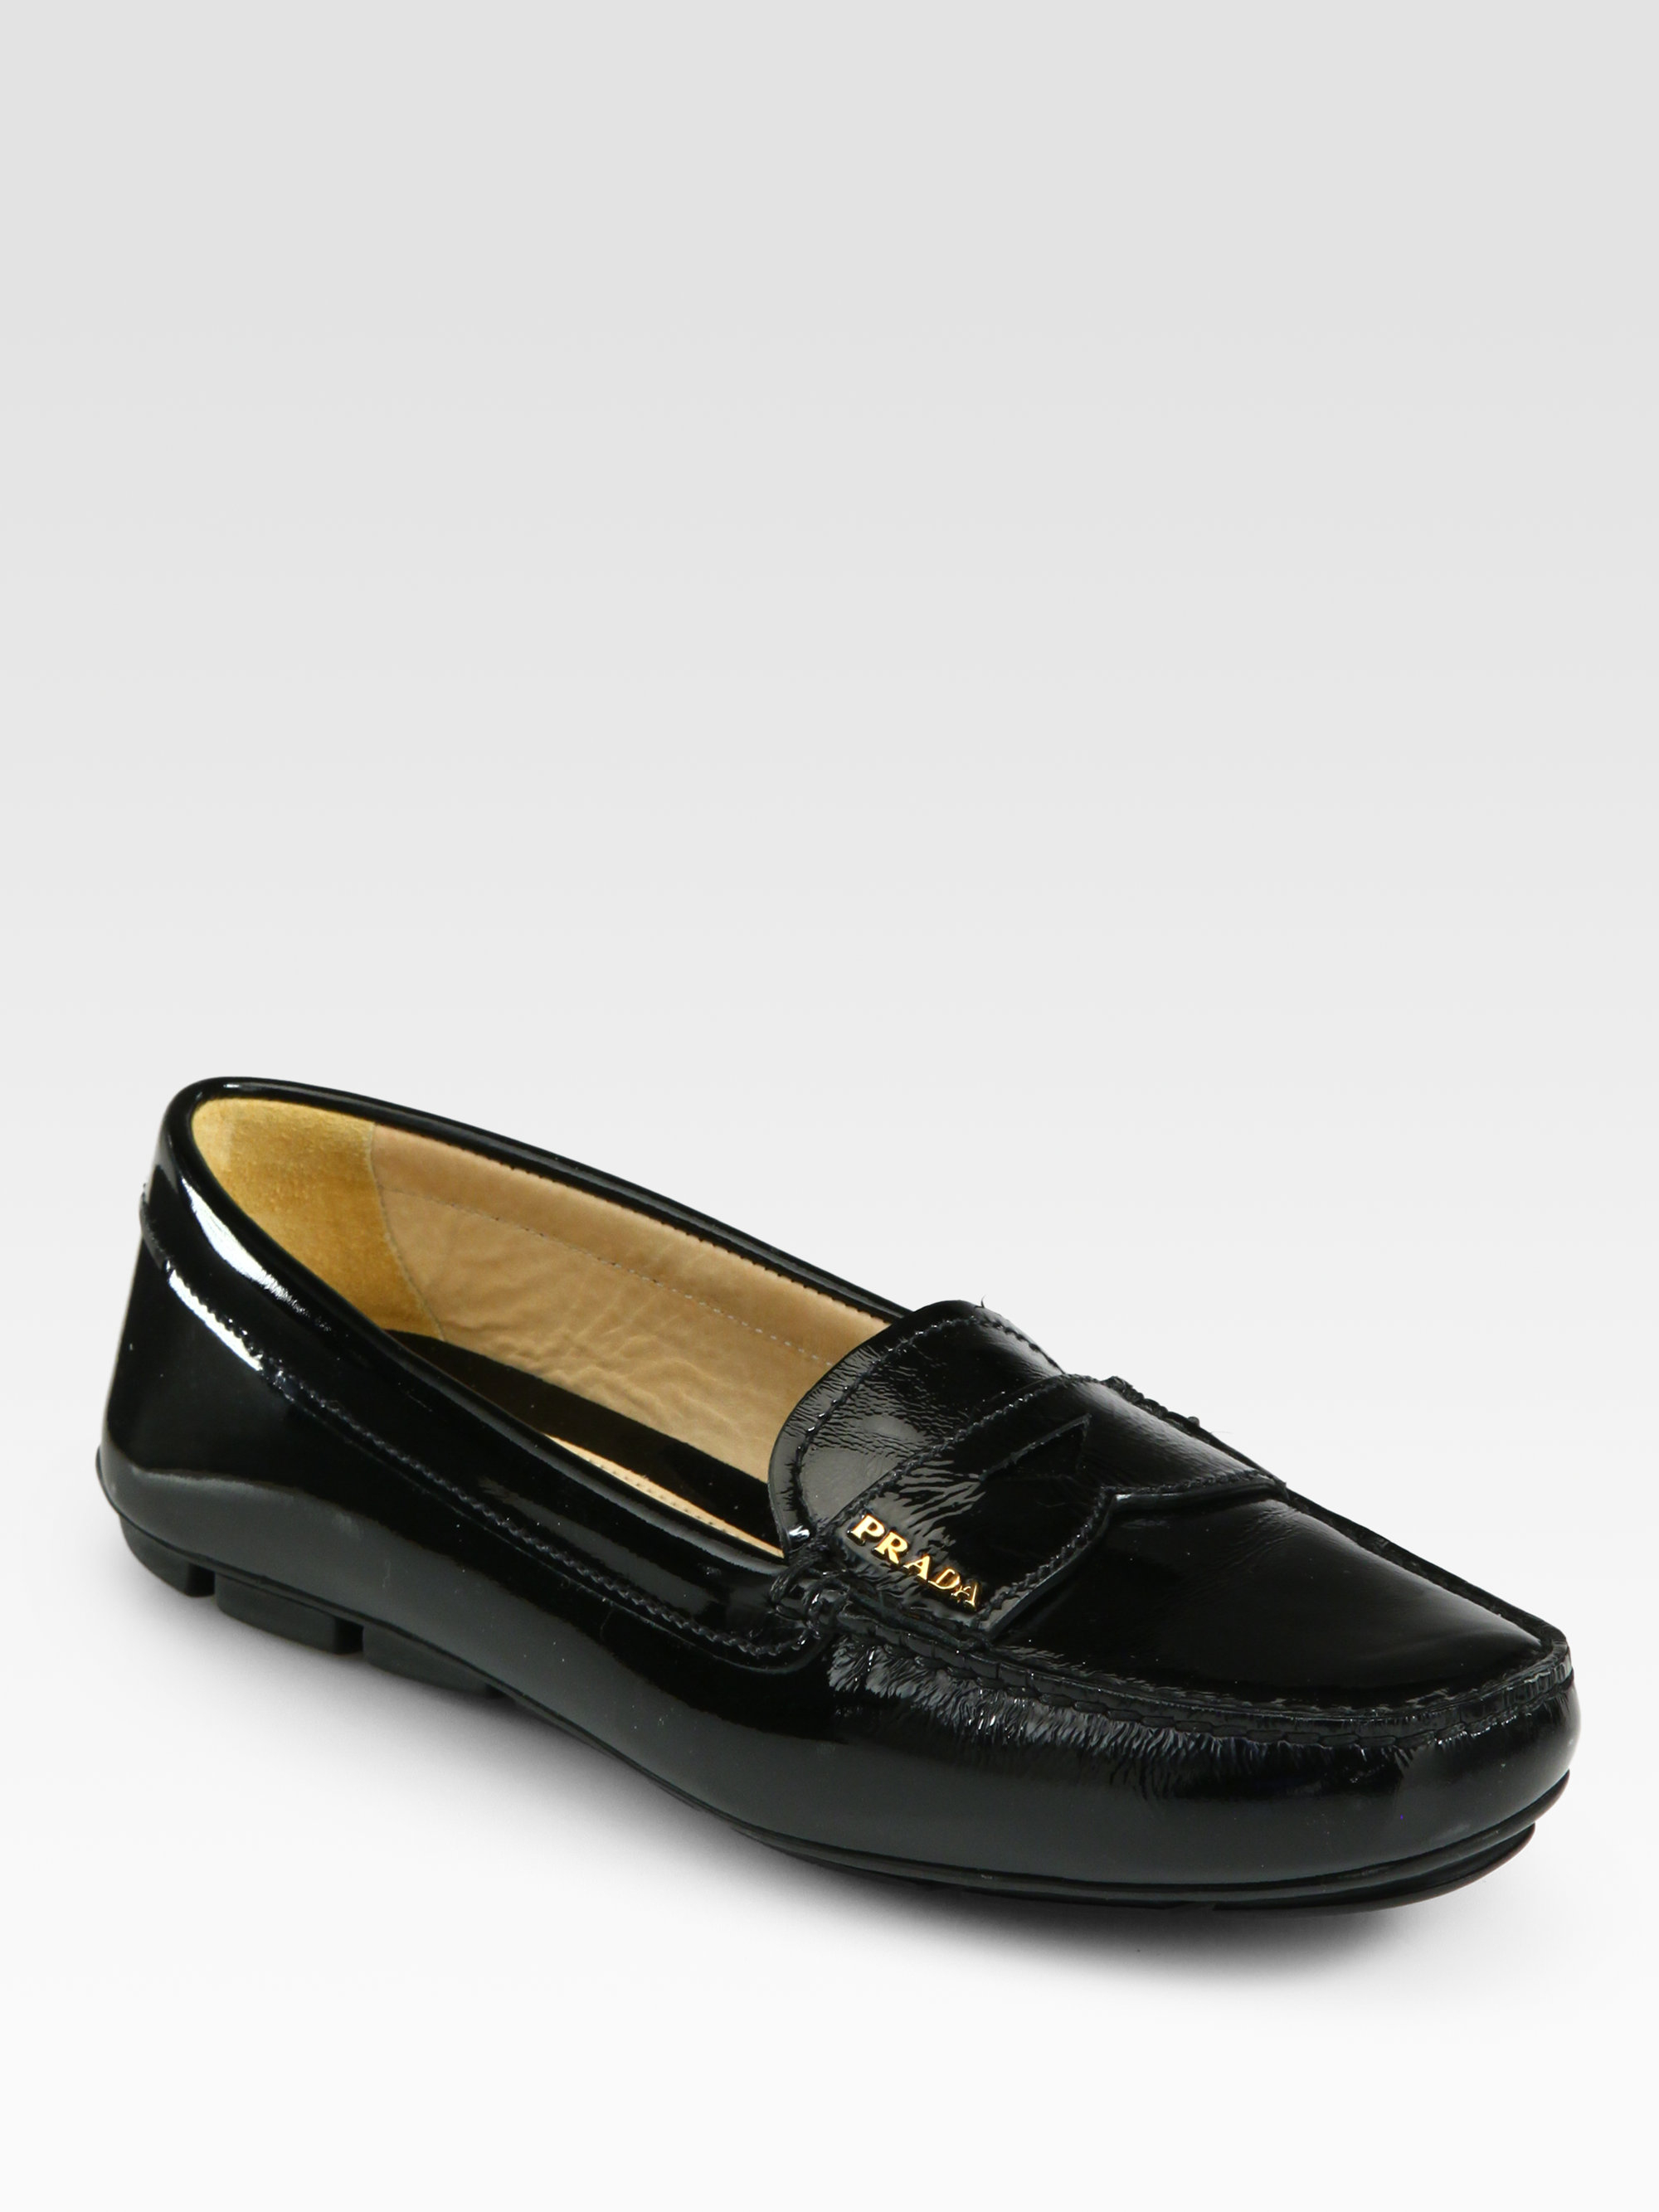 Prada Patent Leather Loafers In Black Lyst